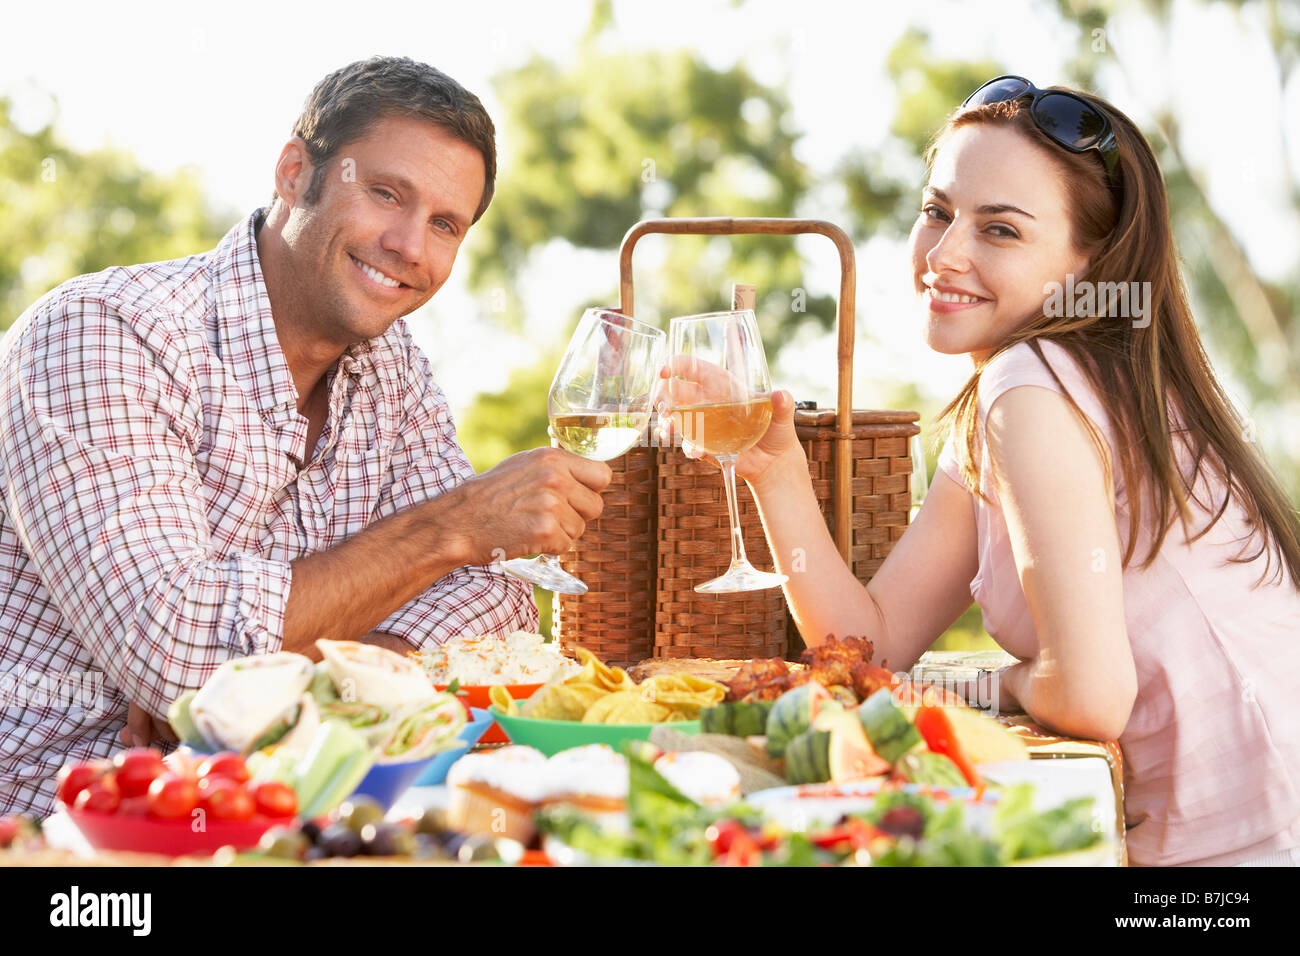 Couple Eating An Al Fresco Meal, Toasting With Wineglasses - Stock Image